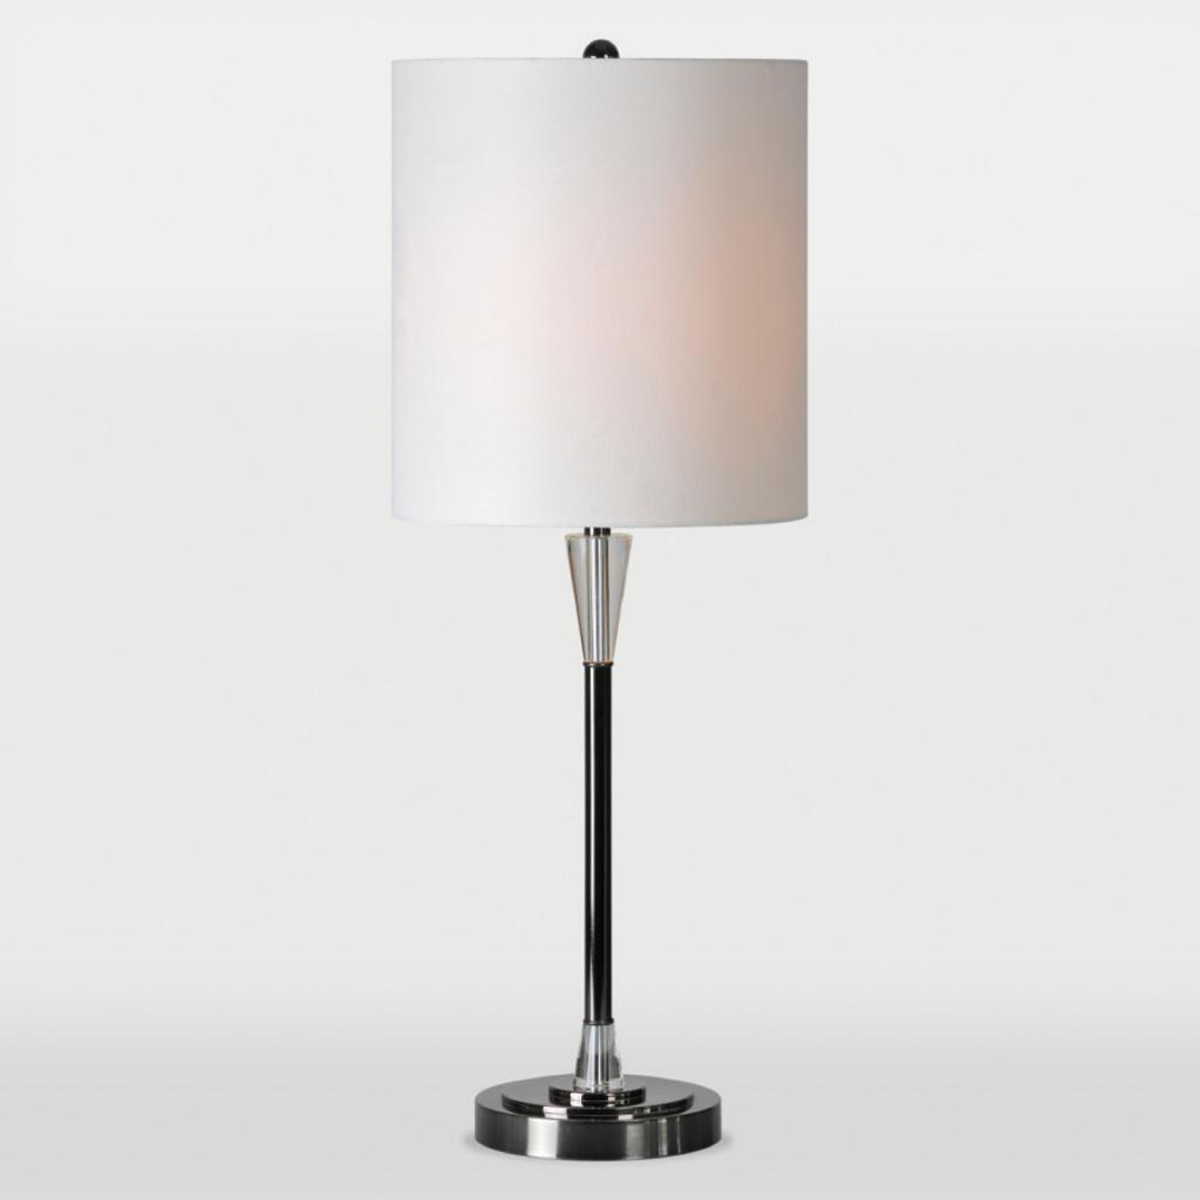 Ren-Wil Arkitekt Table Lamp - Brushed Nickel